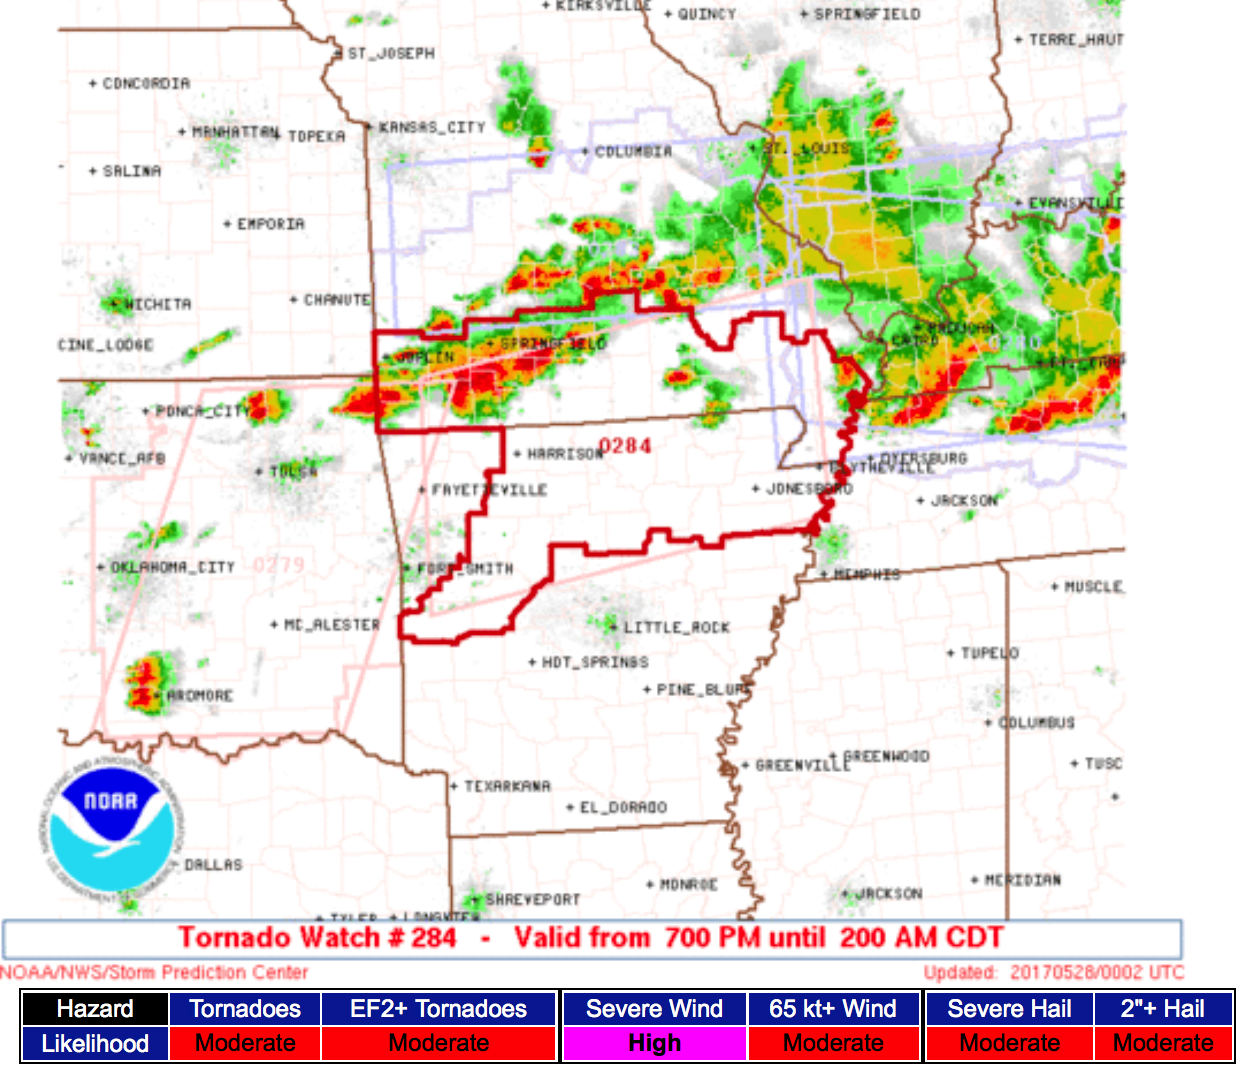 Mike smith enterprises blog new tornado watch until 2am the threat for violent weather in the ozarks plains and midwest is not going to end soon unfortunately publicscrutiny Gallery